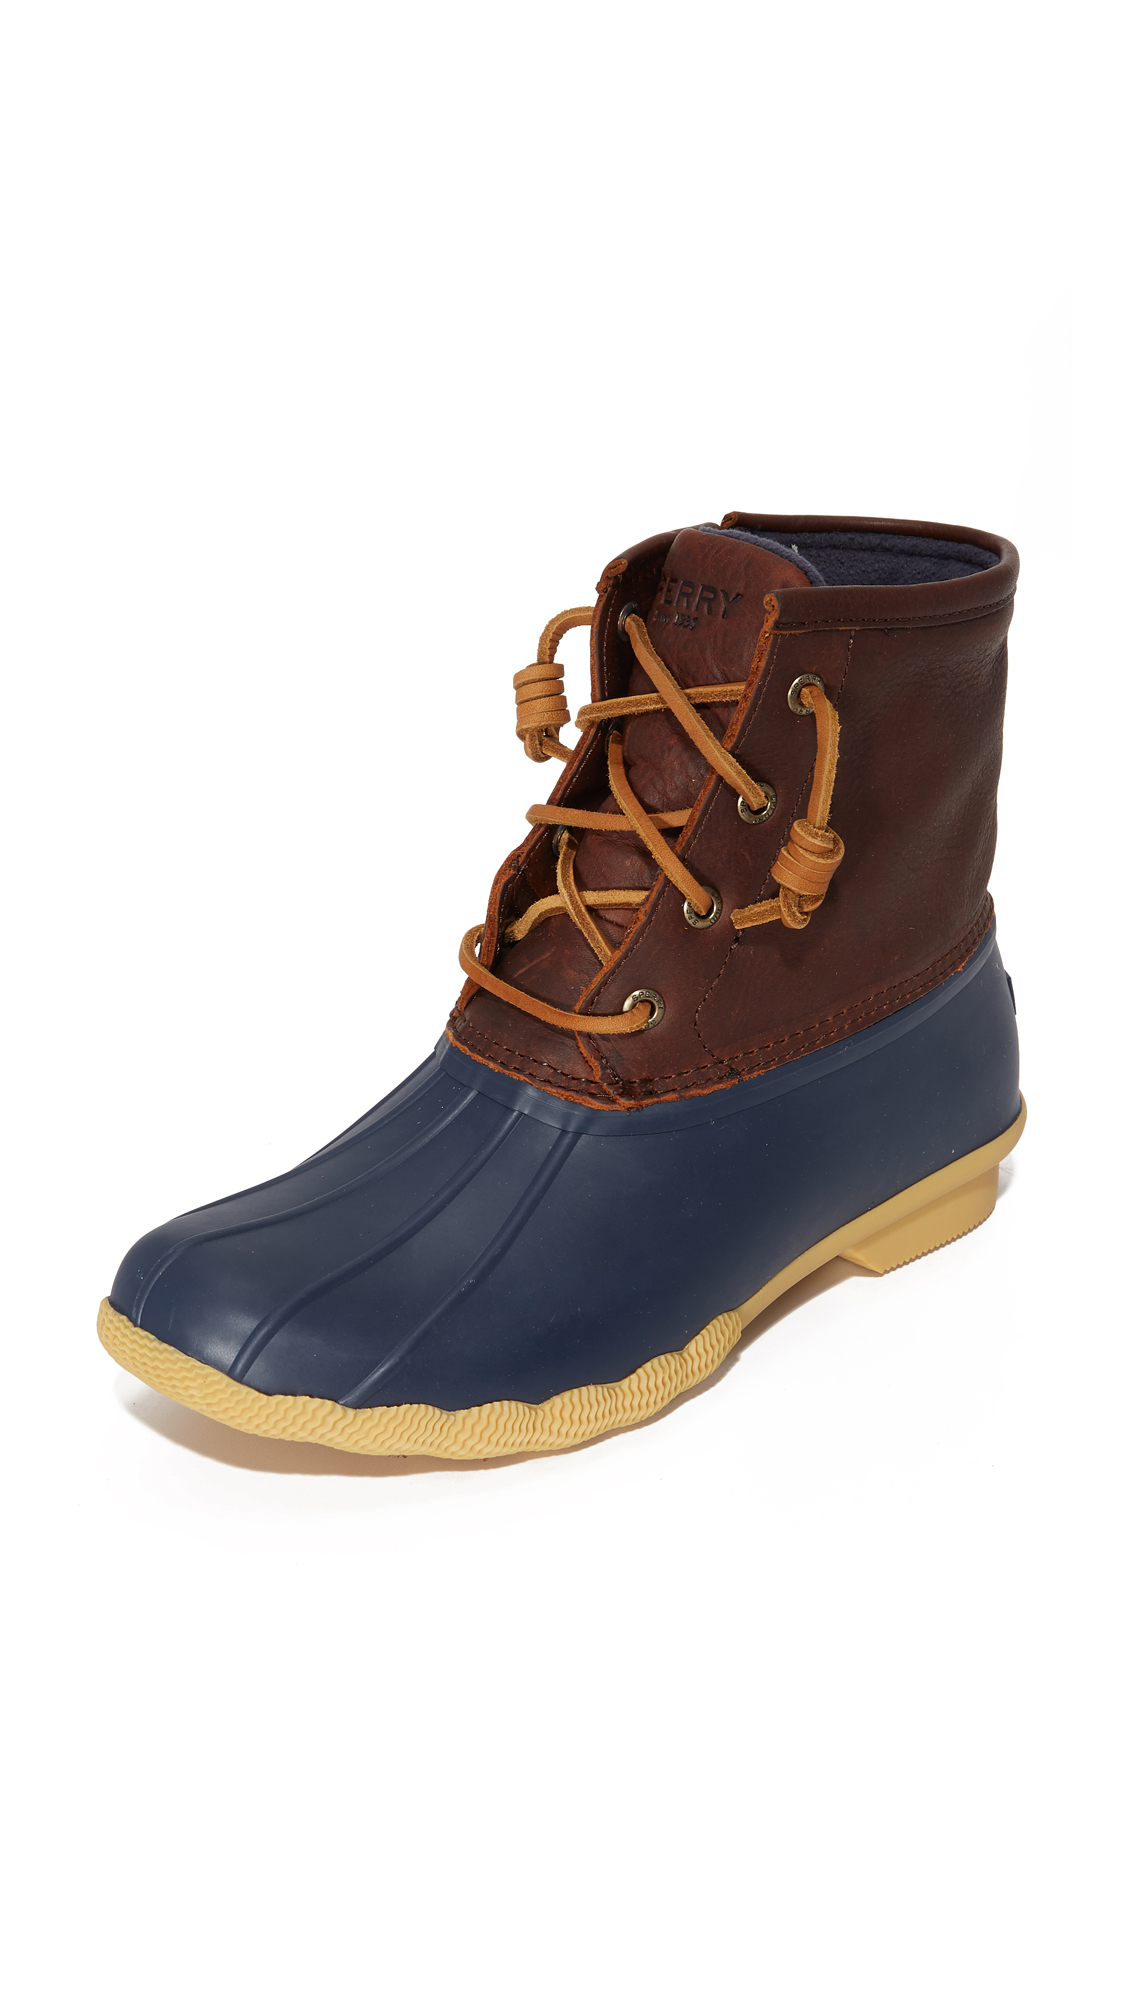 sperry female sperry saltwater thinsulate booties tannavy